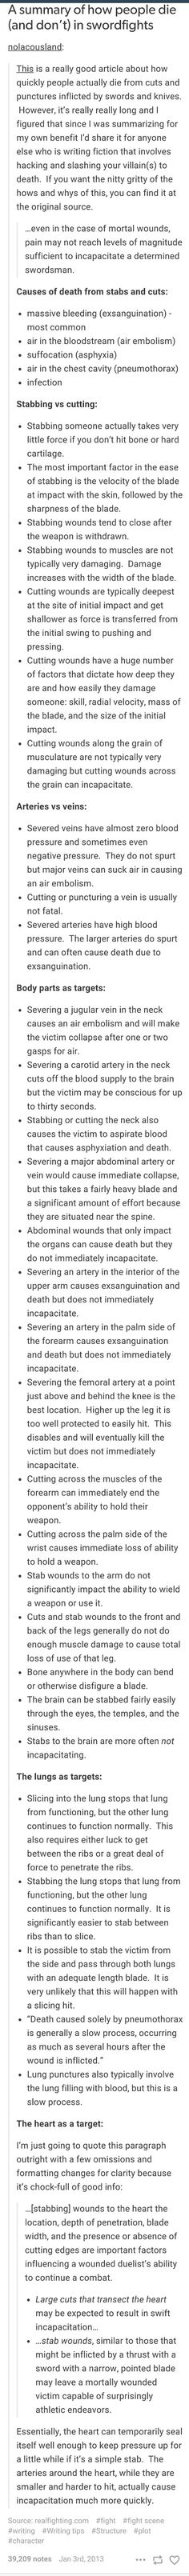 Really informative list about stab wounds. Basically everything you need to know about them. Read away!: